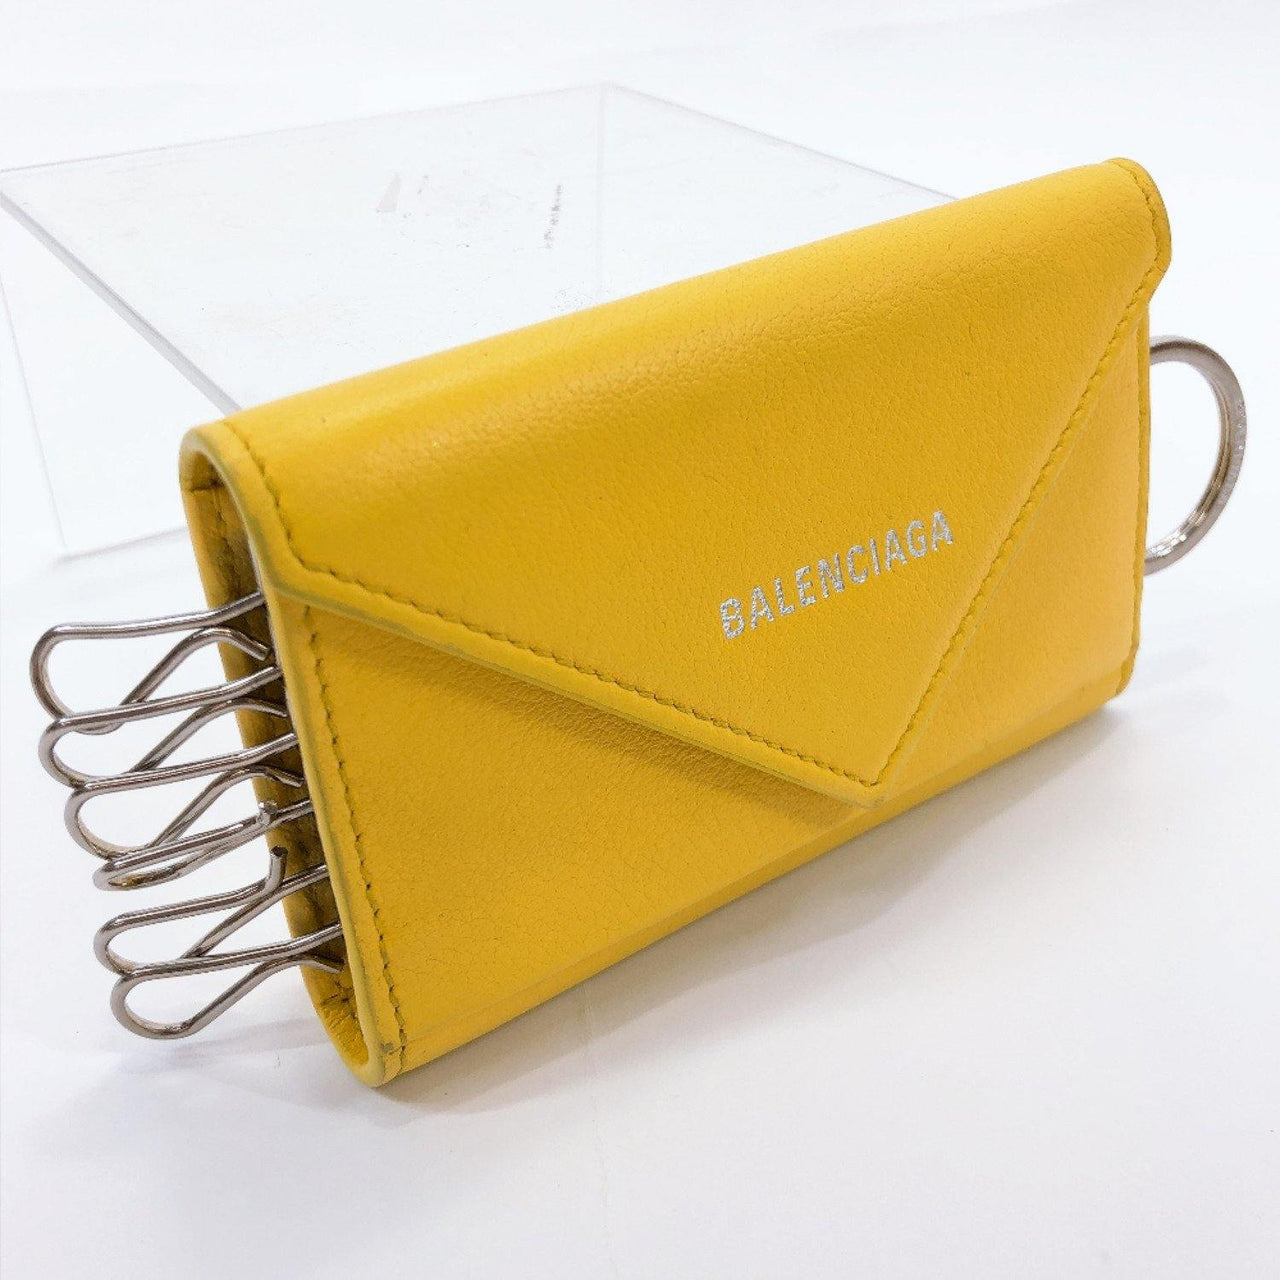 BALENCIAGA key holder 499204 Paper key case six hooks leather yellow unisex Used - JP-BRANDS.com